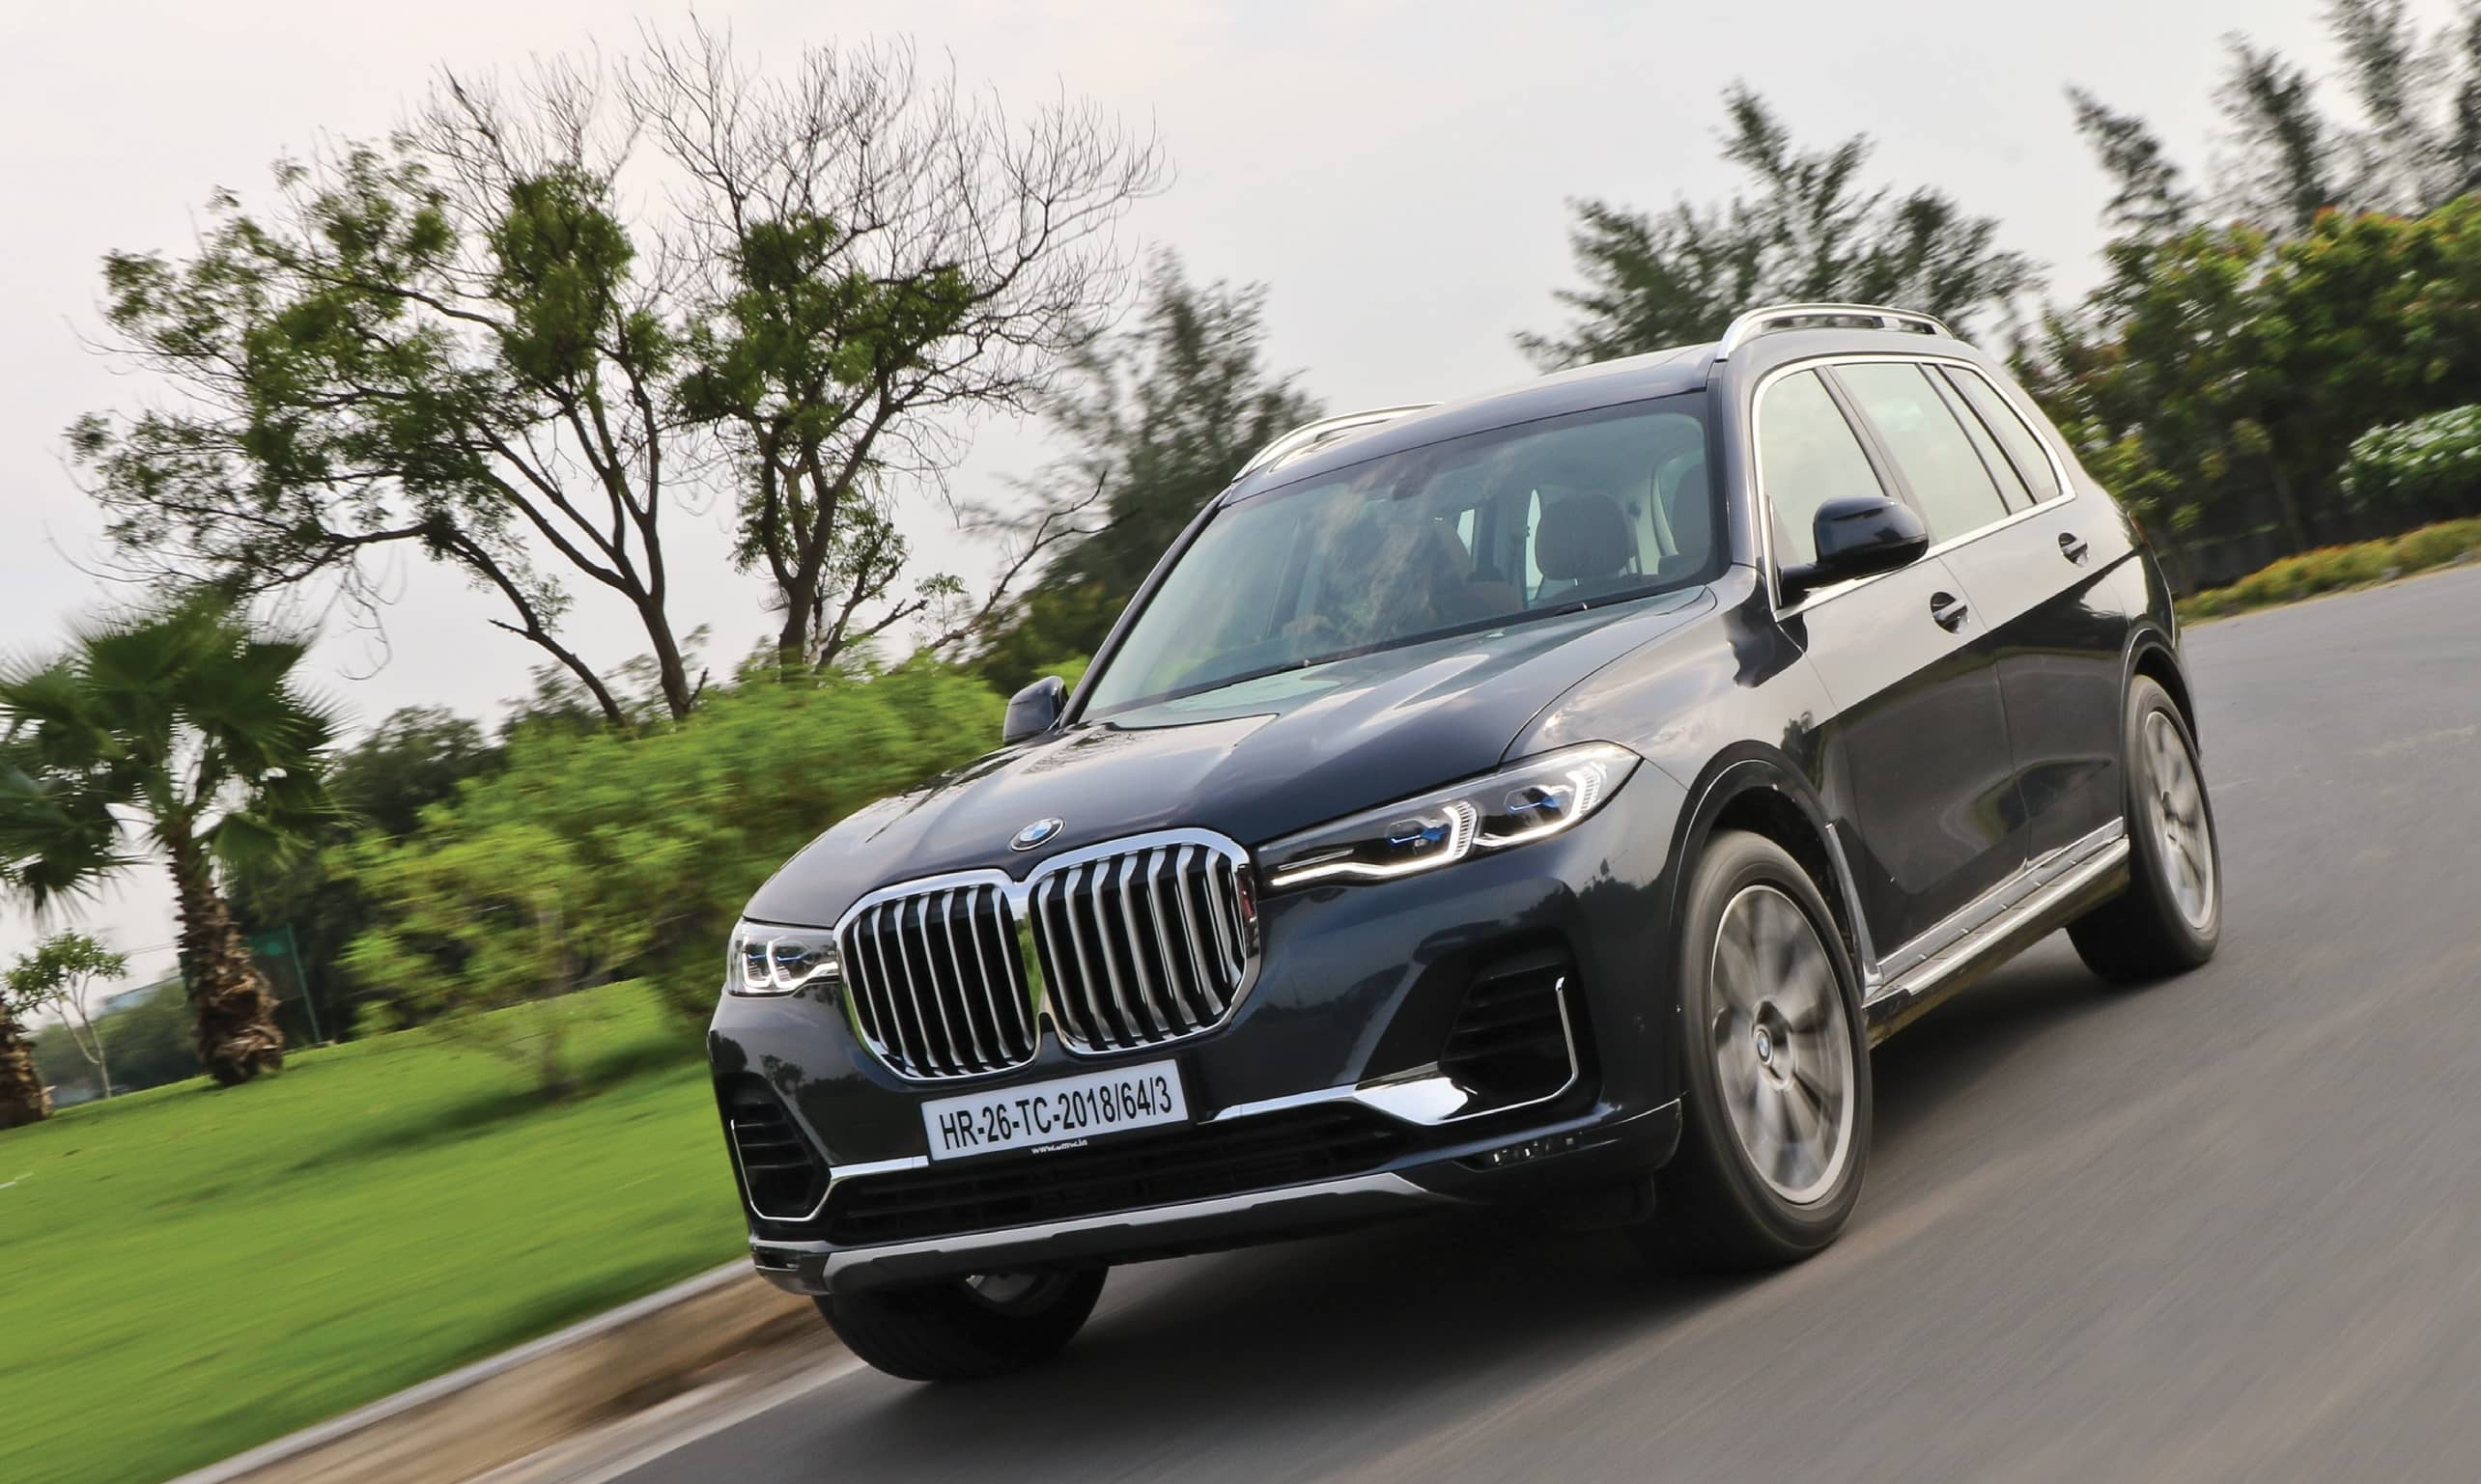 BMW X7 - German Carmaker's Flagship SUV Is Here